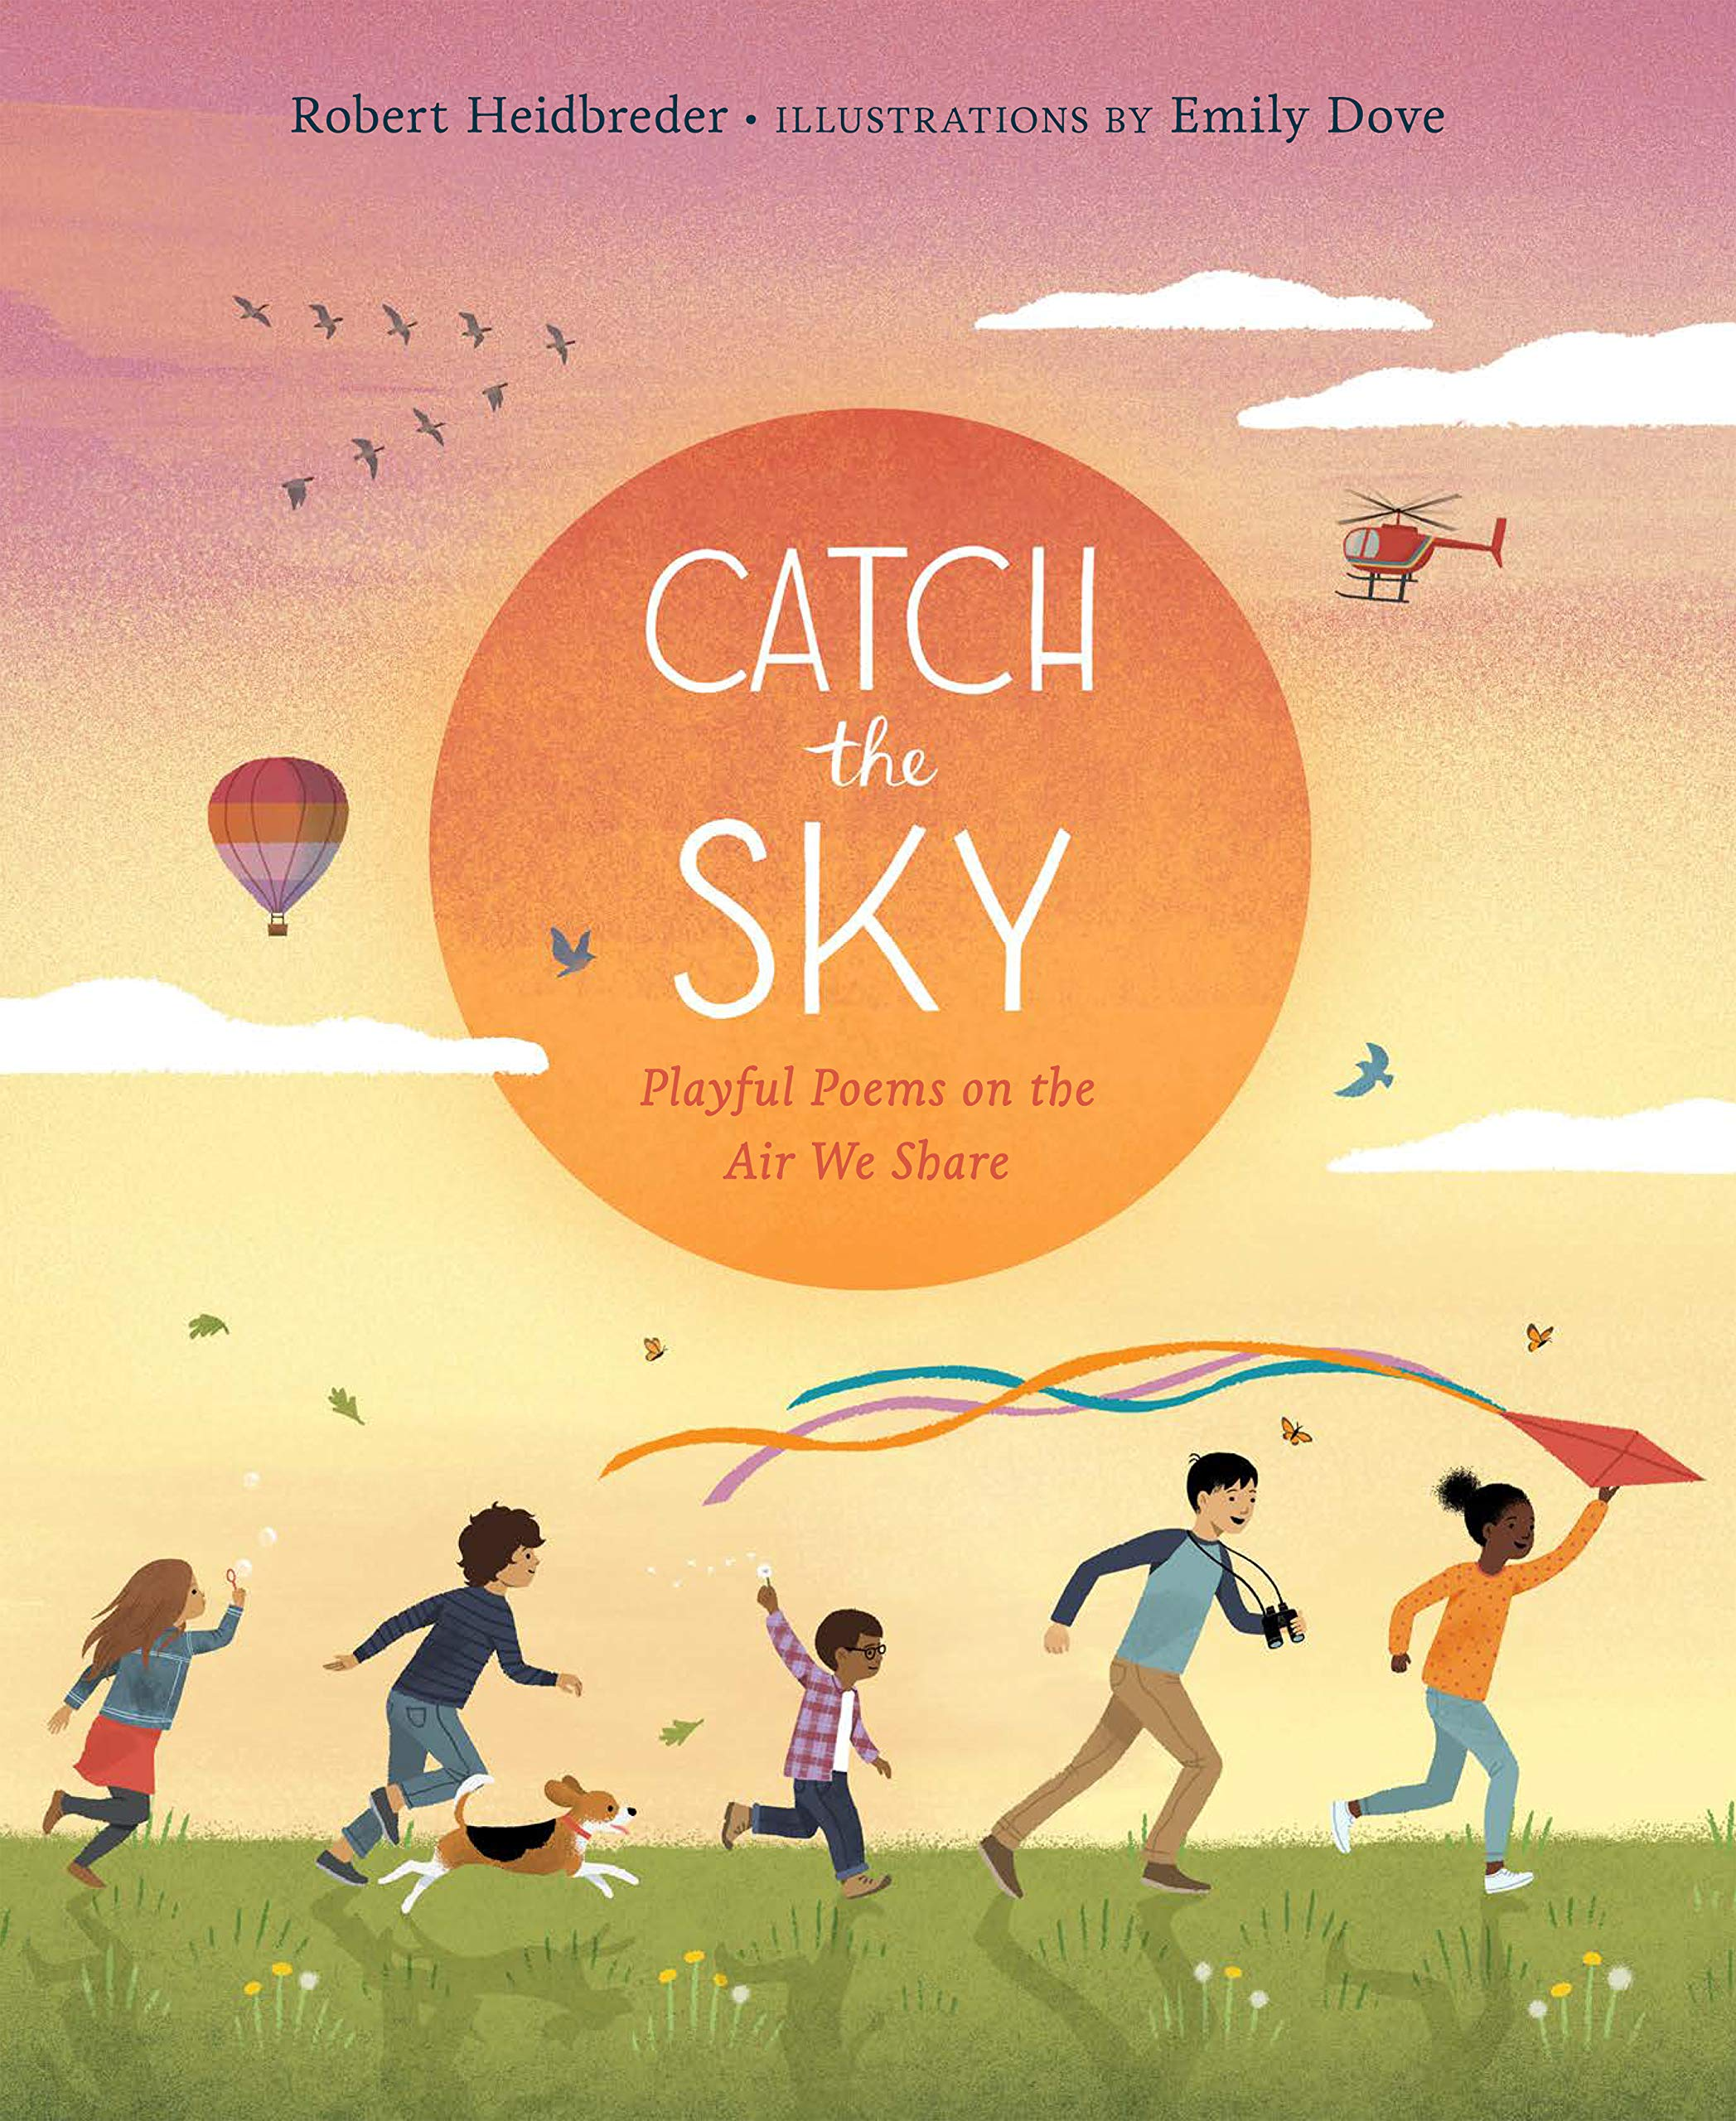 Catch the Sky: Playful Poems on the Air We Share: Heidbreder, Robert, Dove,  Emily: 9781771646314: Amazon.com: Books